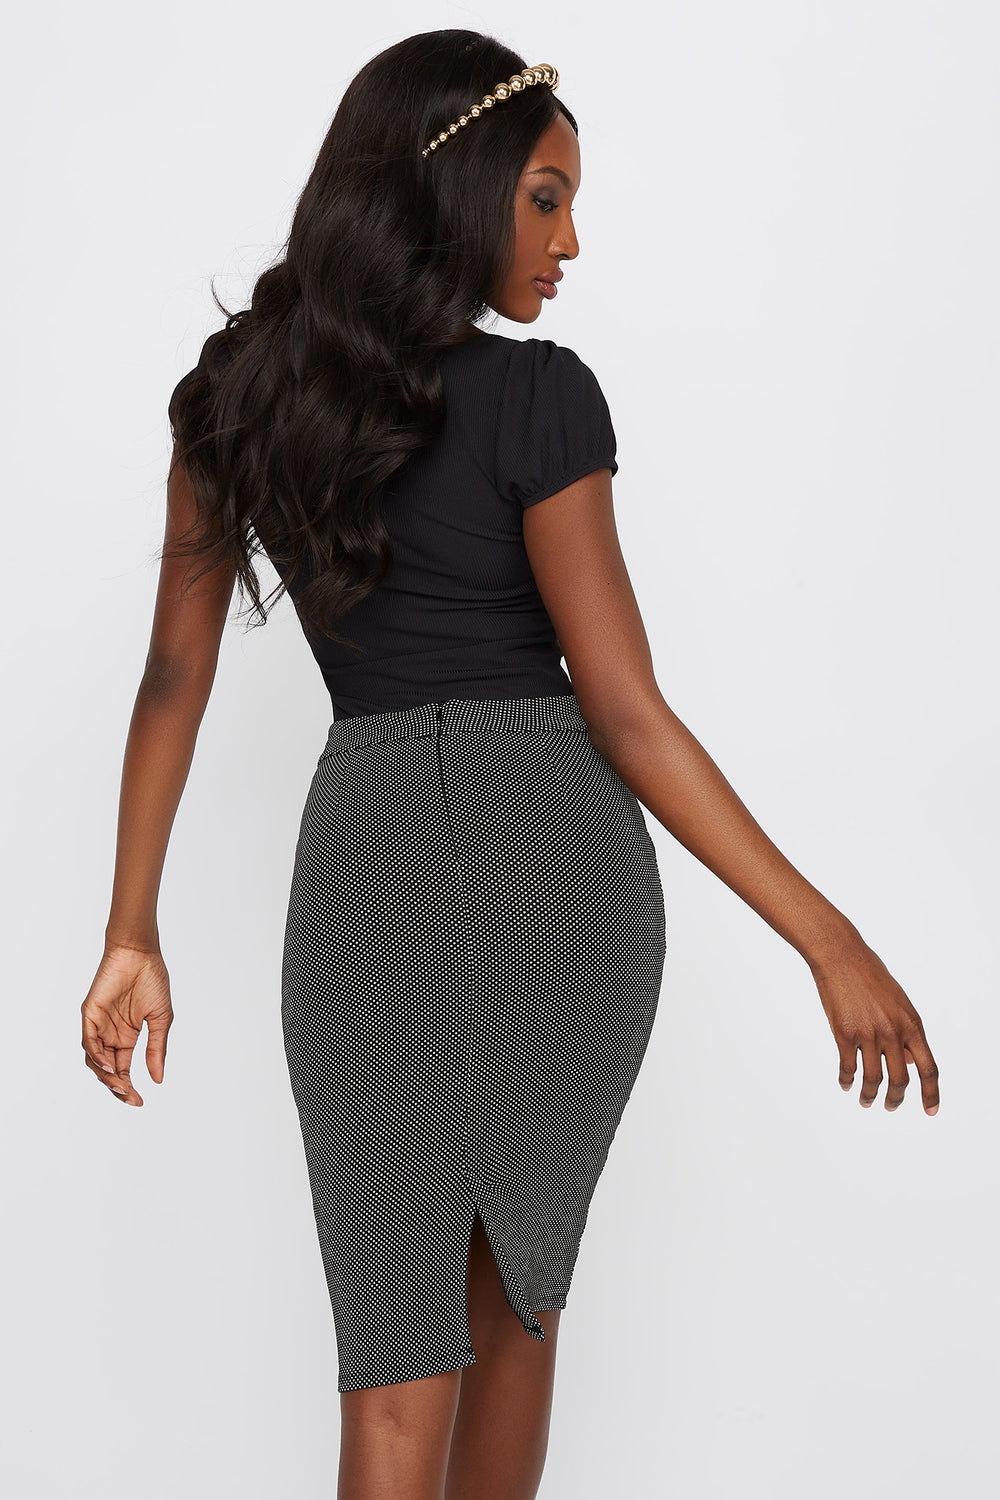 Micro Dot Pencil Skirt Black with White